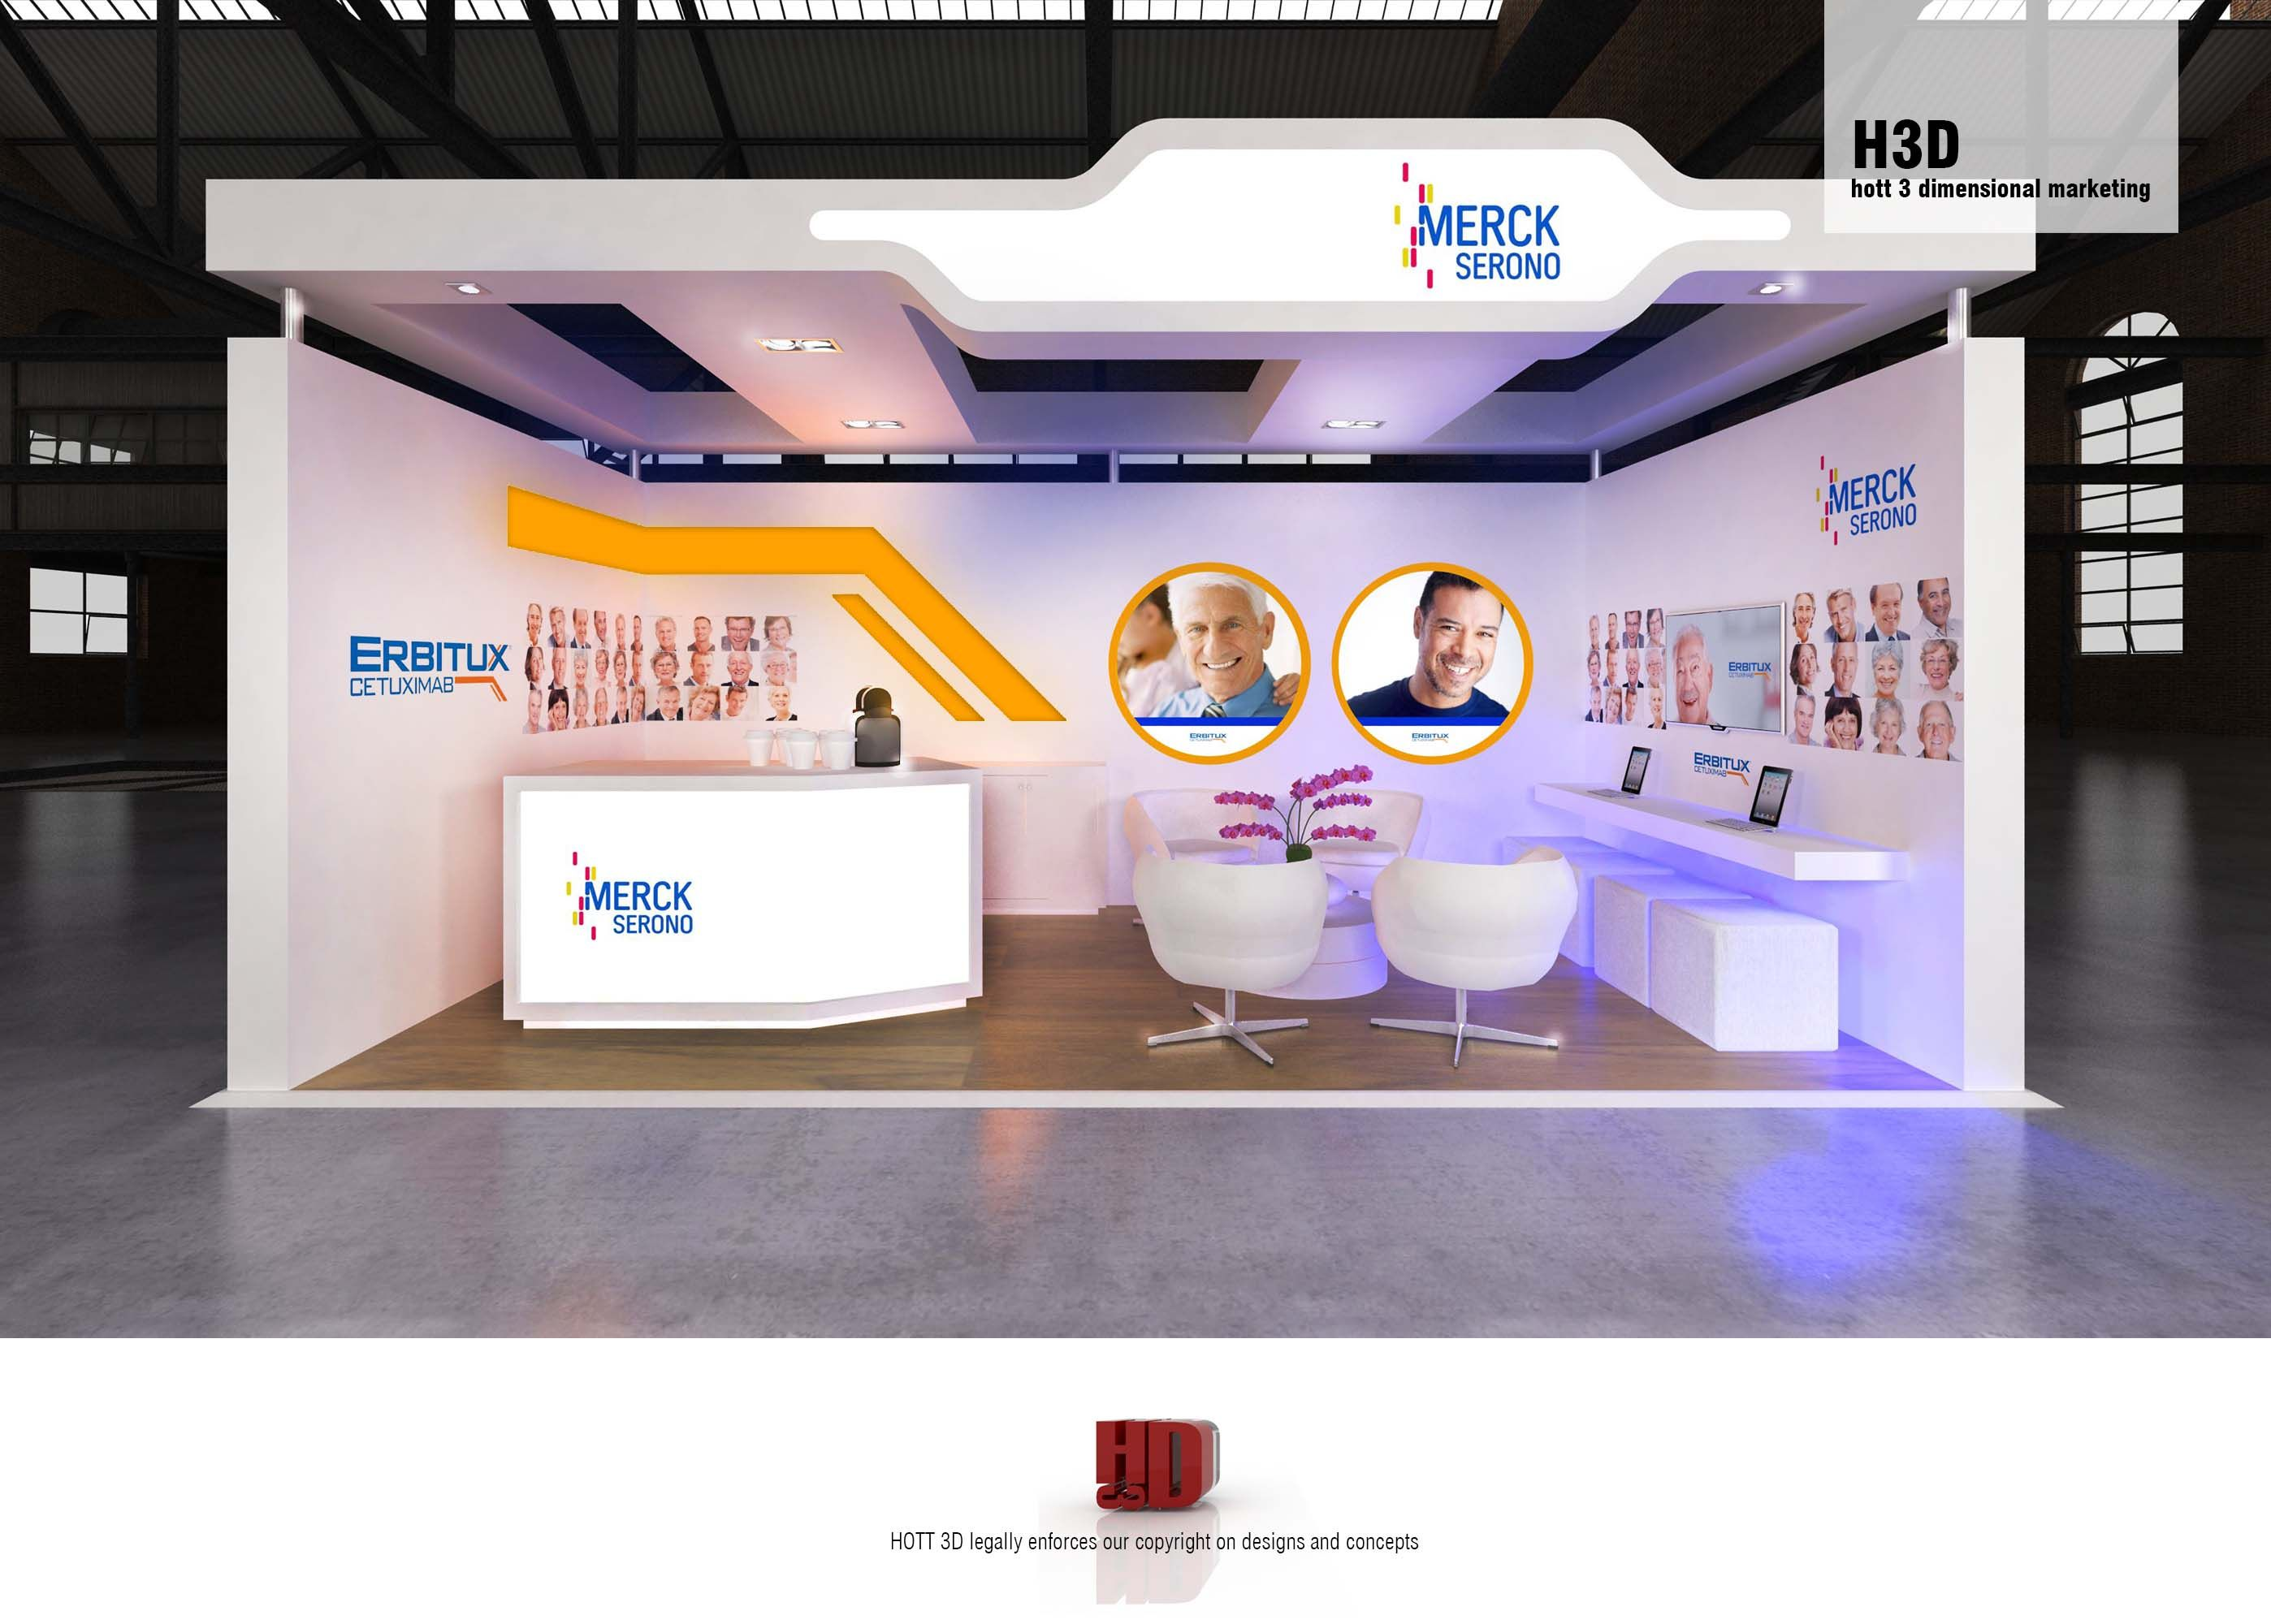 Merck serono full custom 6m x 3m booth hott3d c a d for Kitchen design 6m x 3m